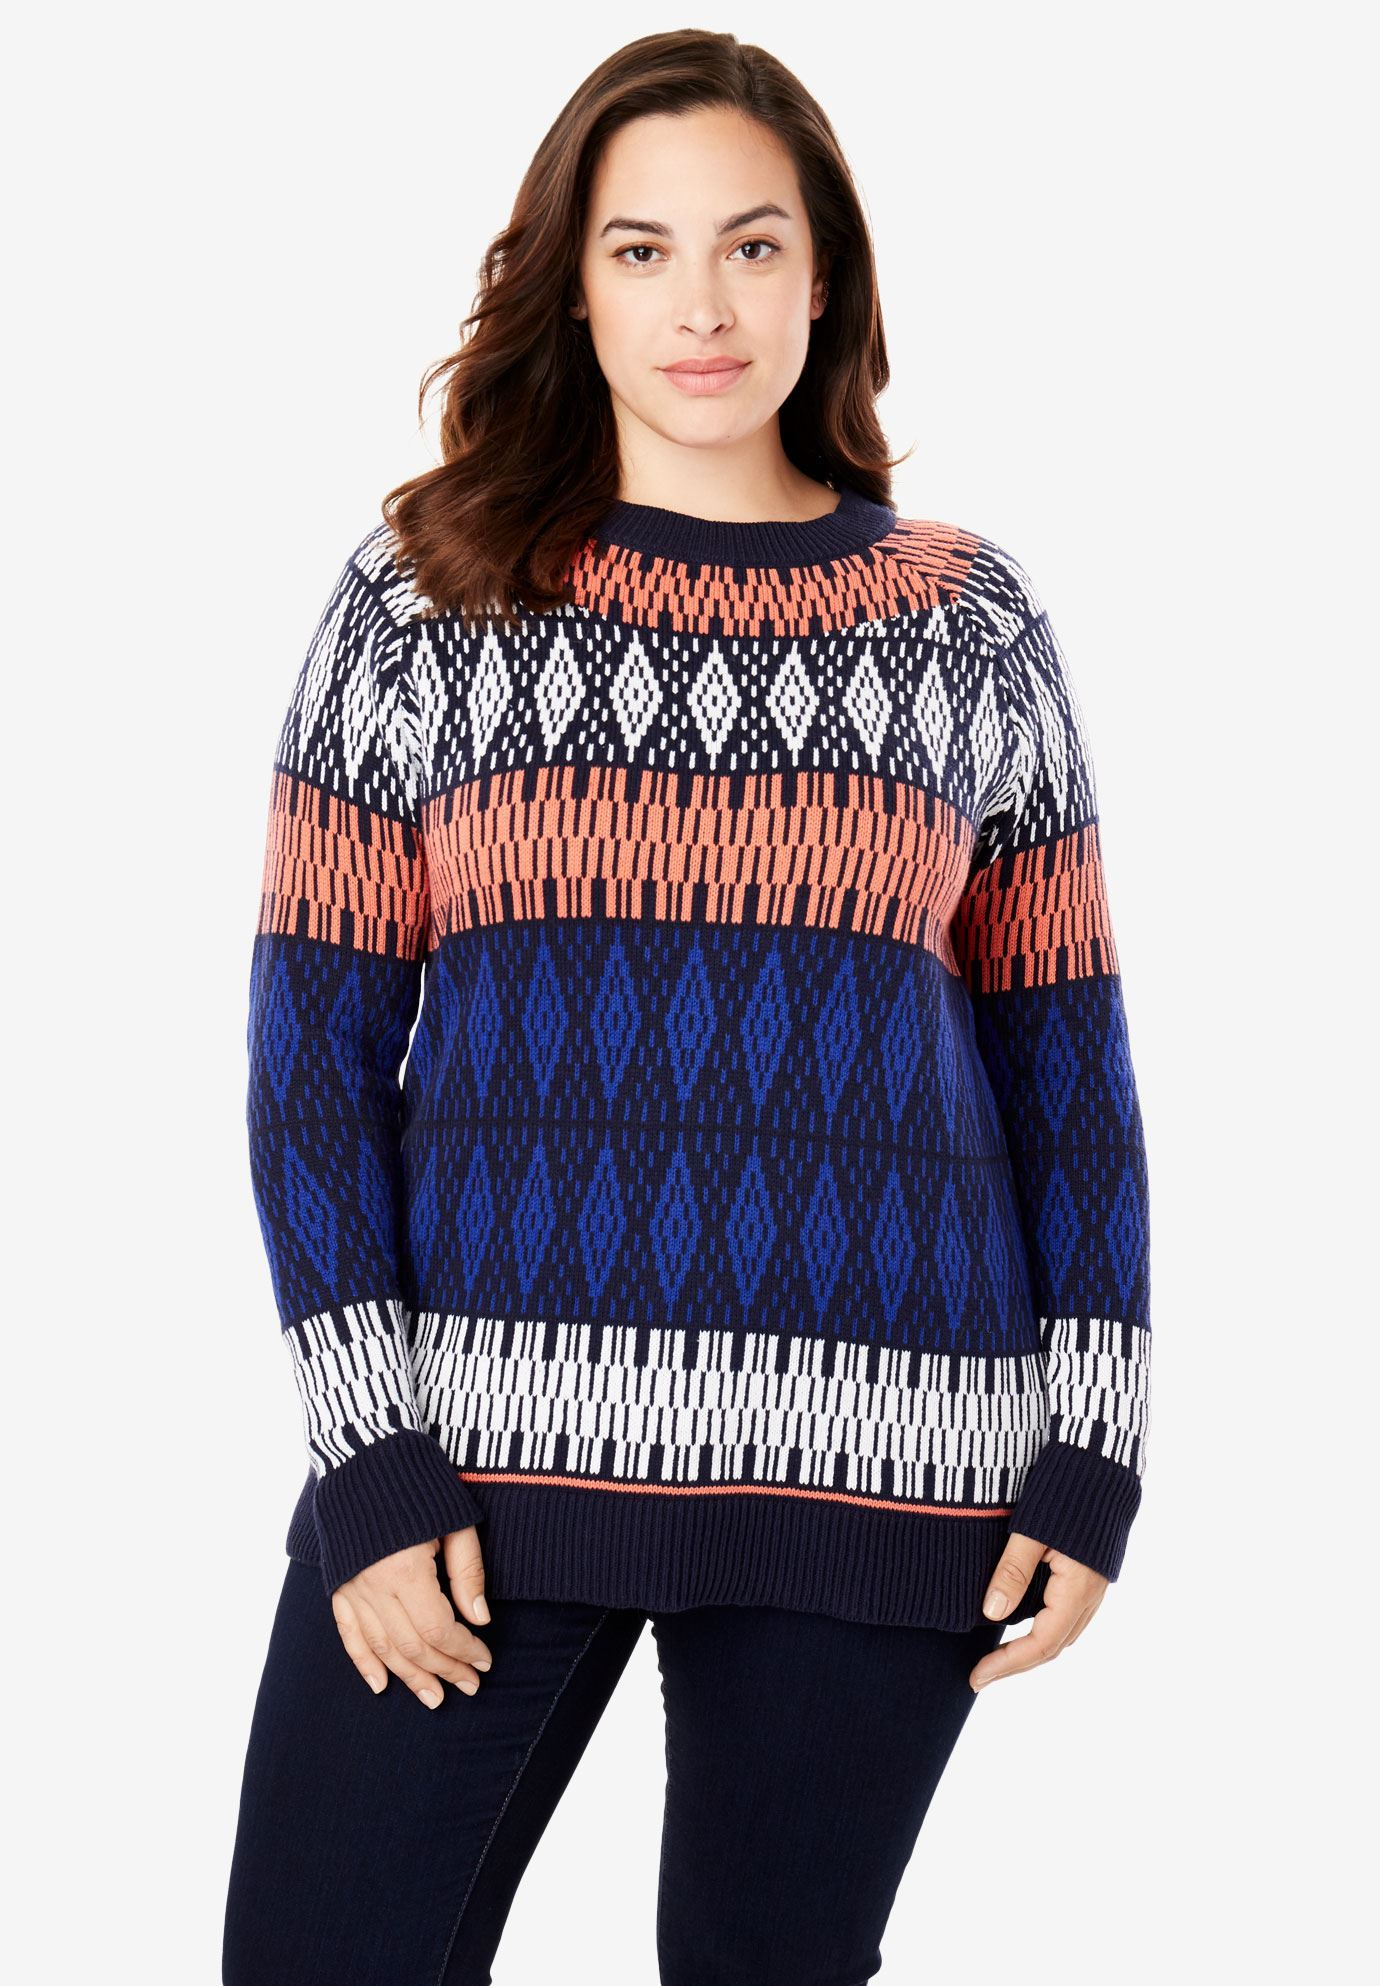 Knitted Pullover Sweater Patterns Fair Isle Knit Pullover Sweater